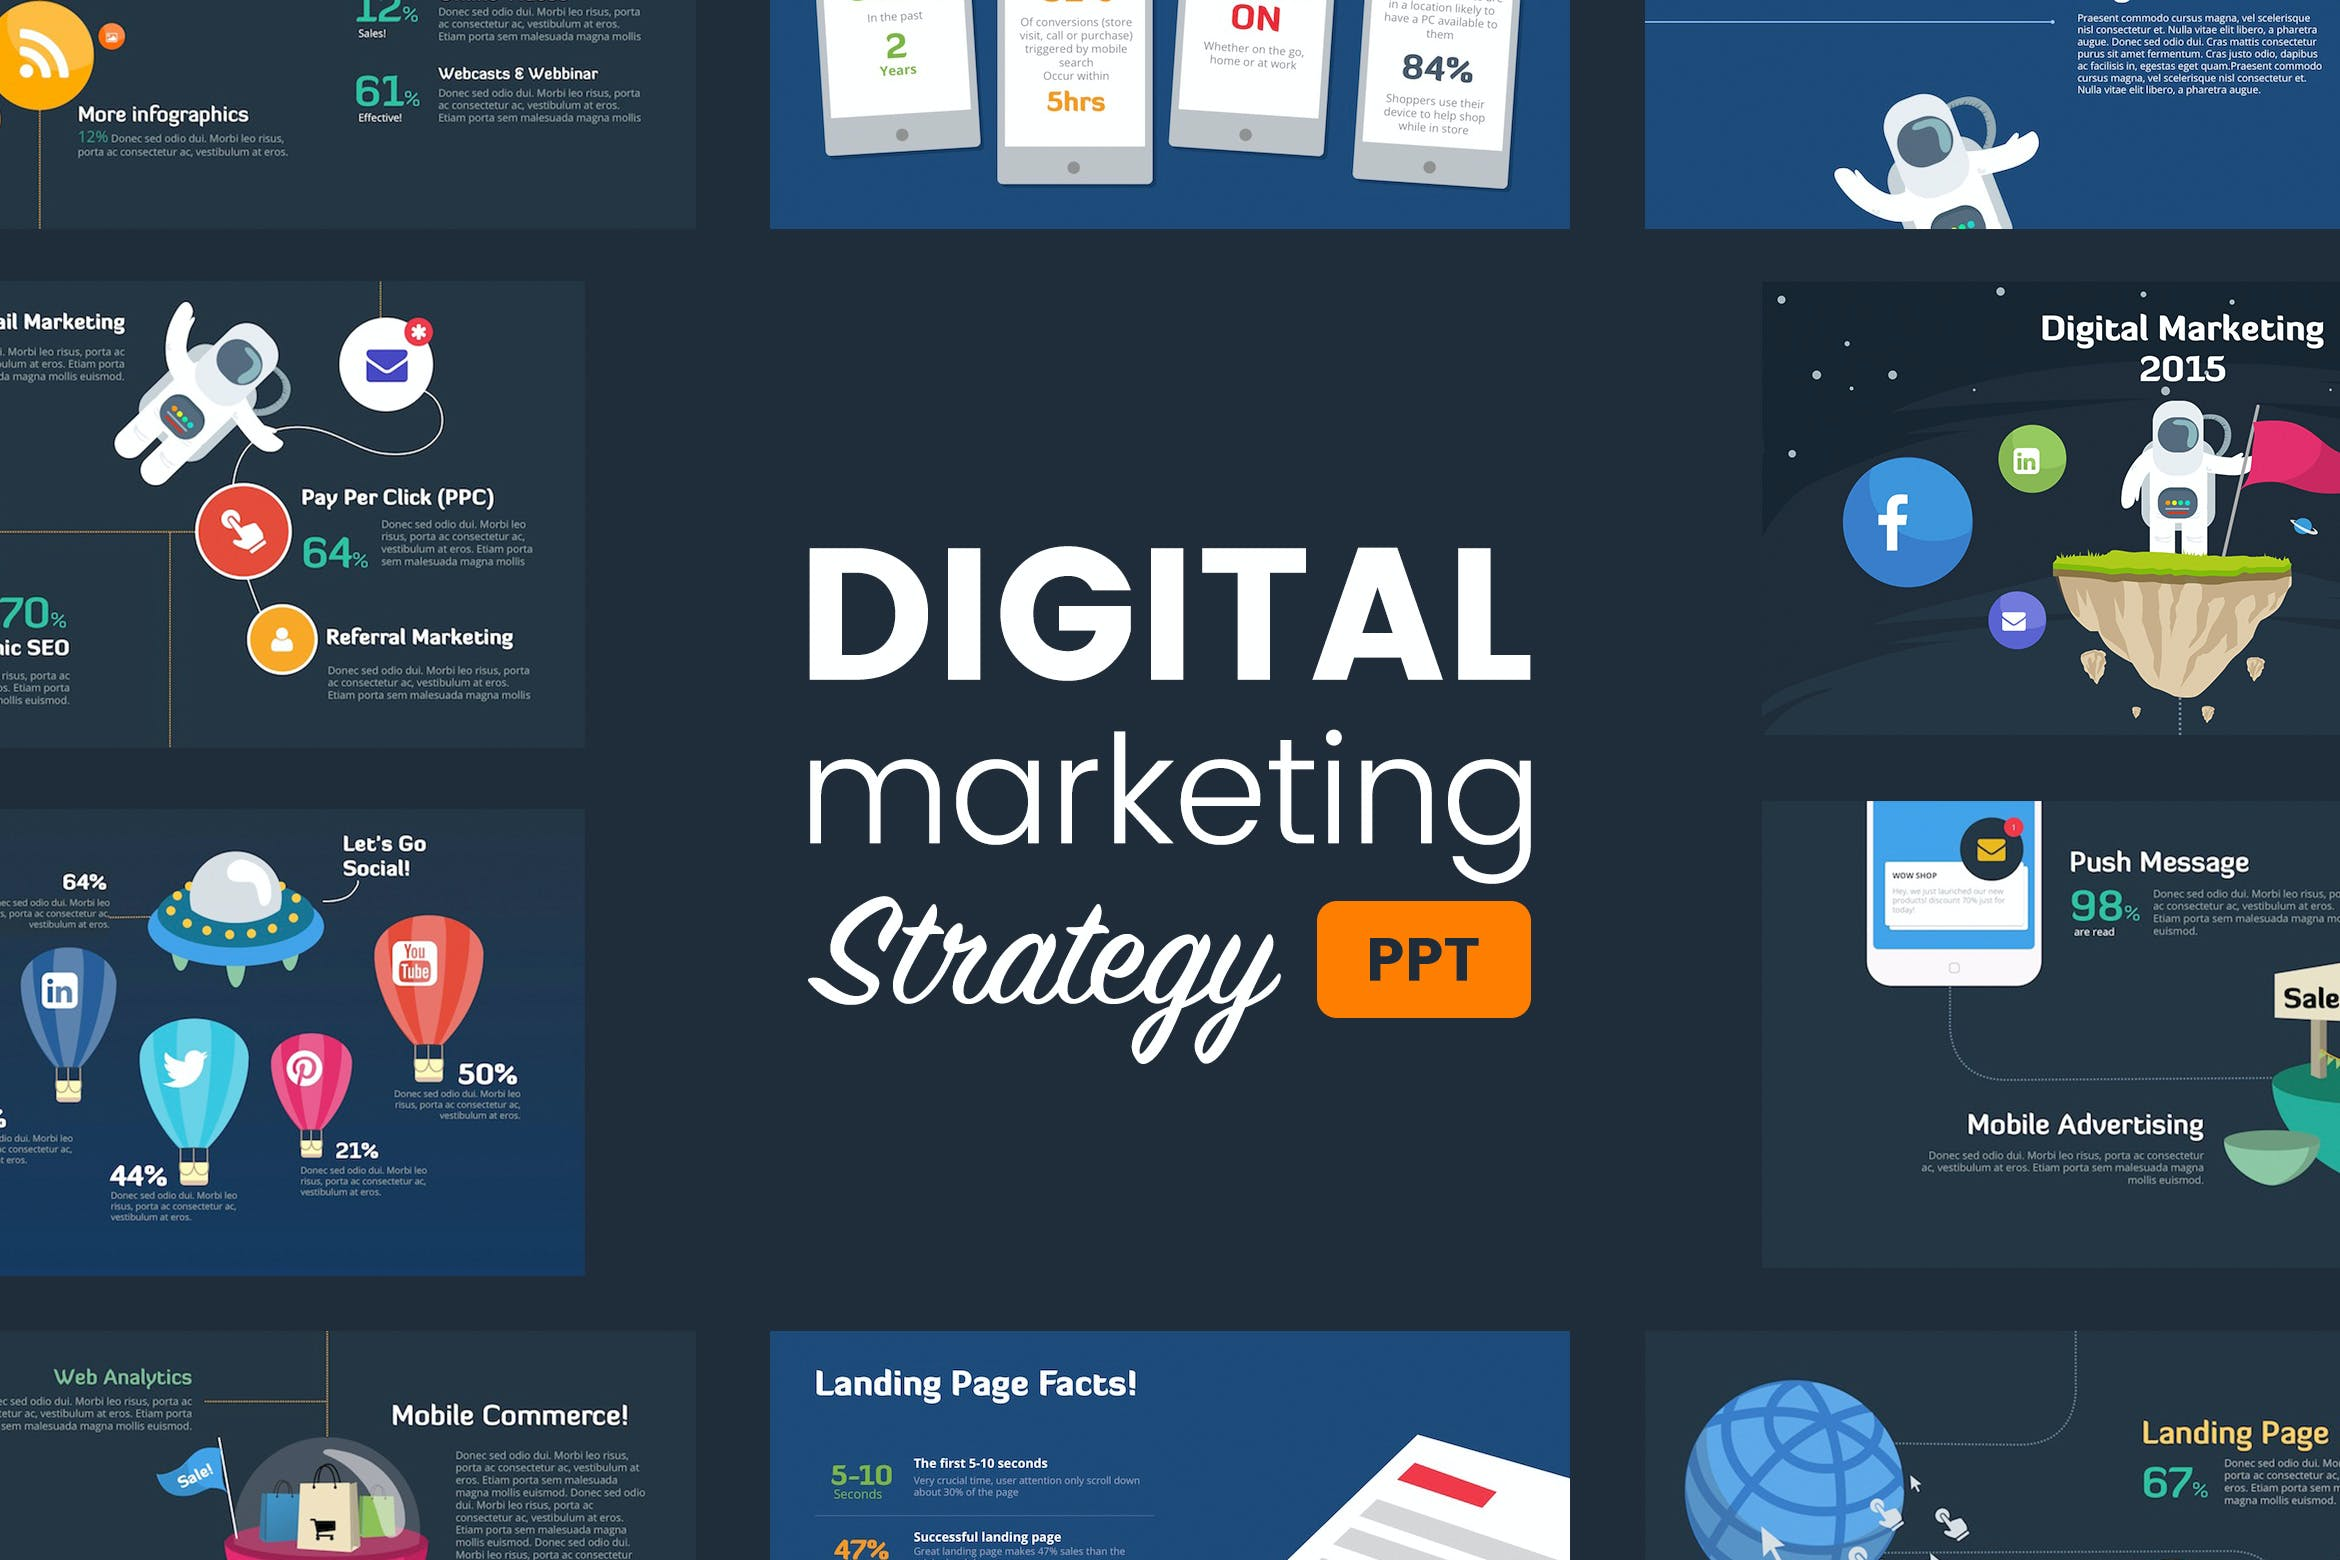 Digital Marketing Strategy - Powerpoint Template [Free Download] SEO Graphic Bundle – Graphics dành cho nghề SEO